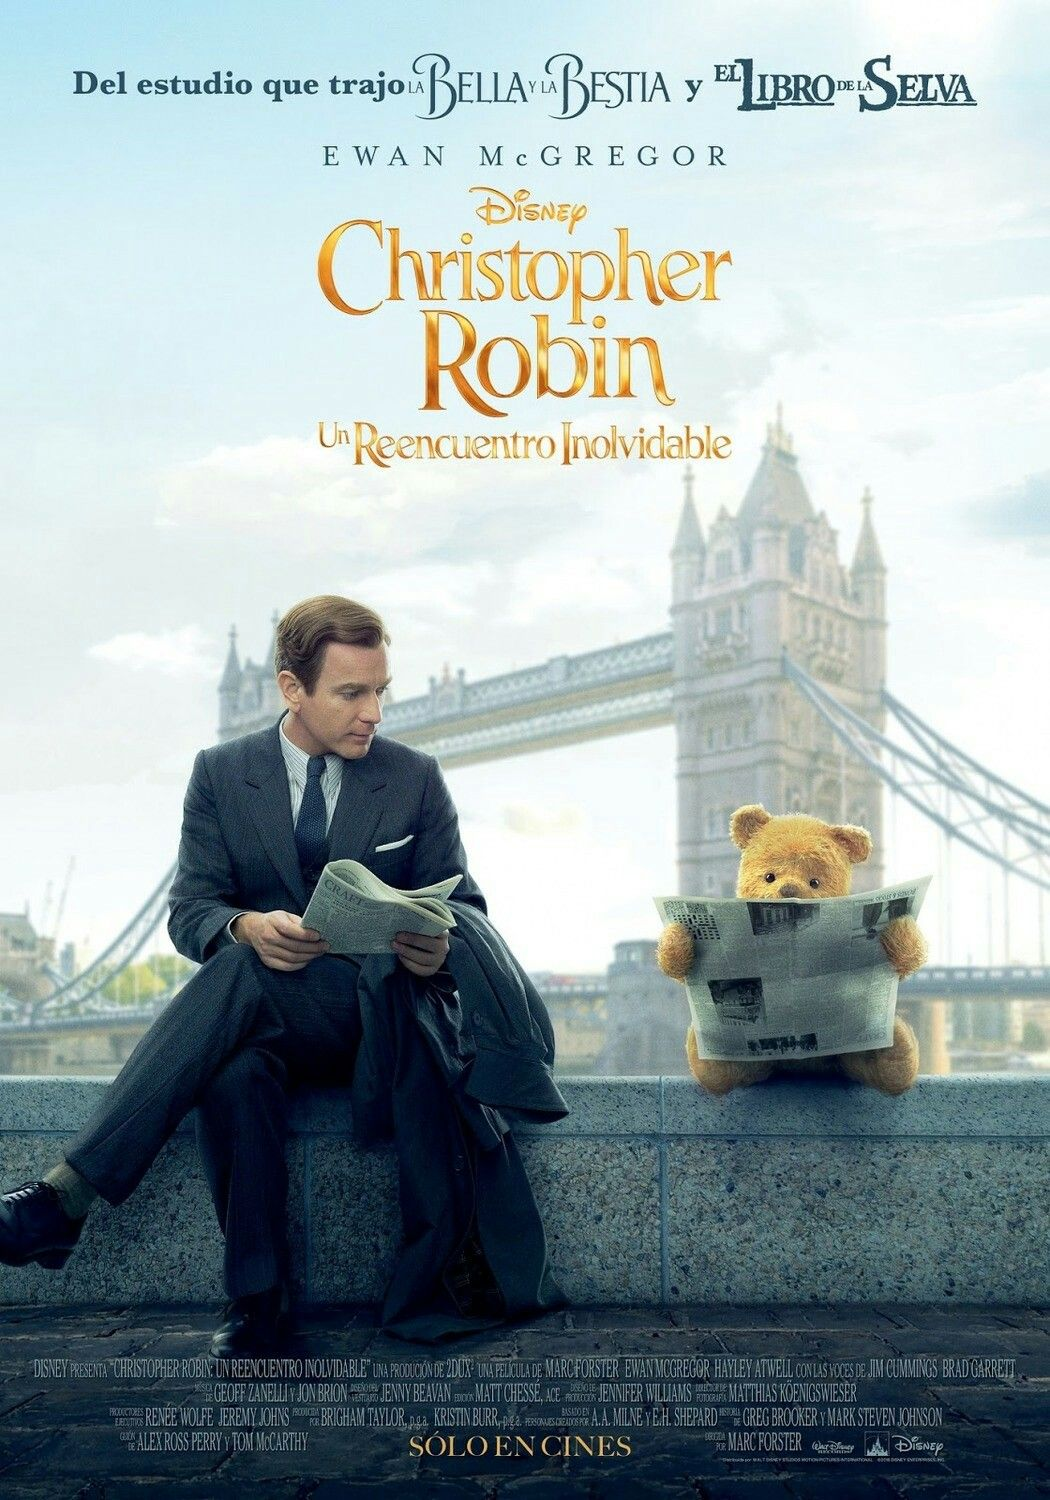 Christopher Robin movie poster Fantastic Movie posters #SciFimovies posters  #Horrormovies posters #Actionmovies posters #Dramamovies posters  #Fantasymovies ...